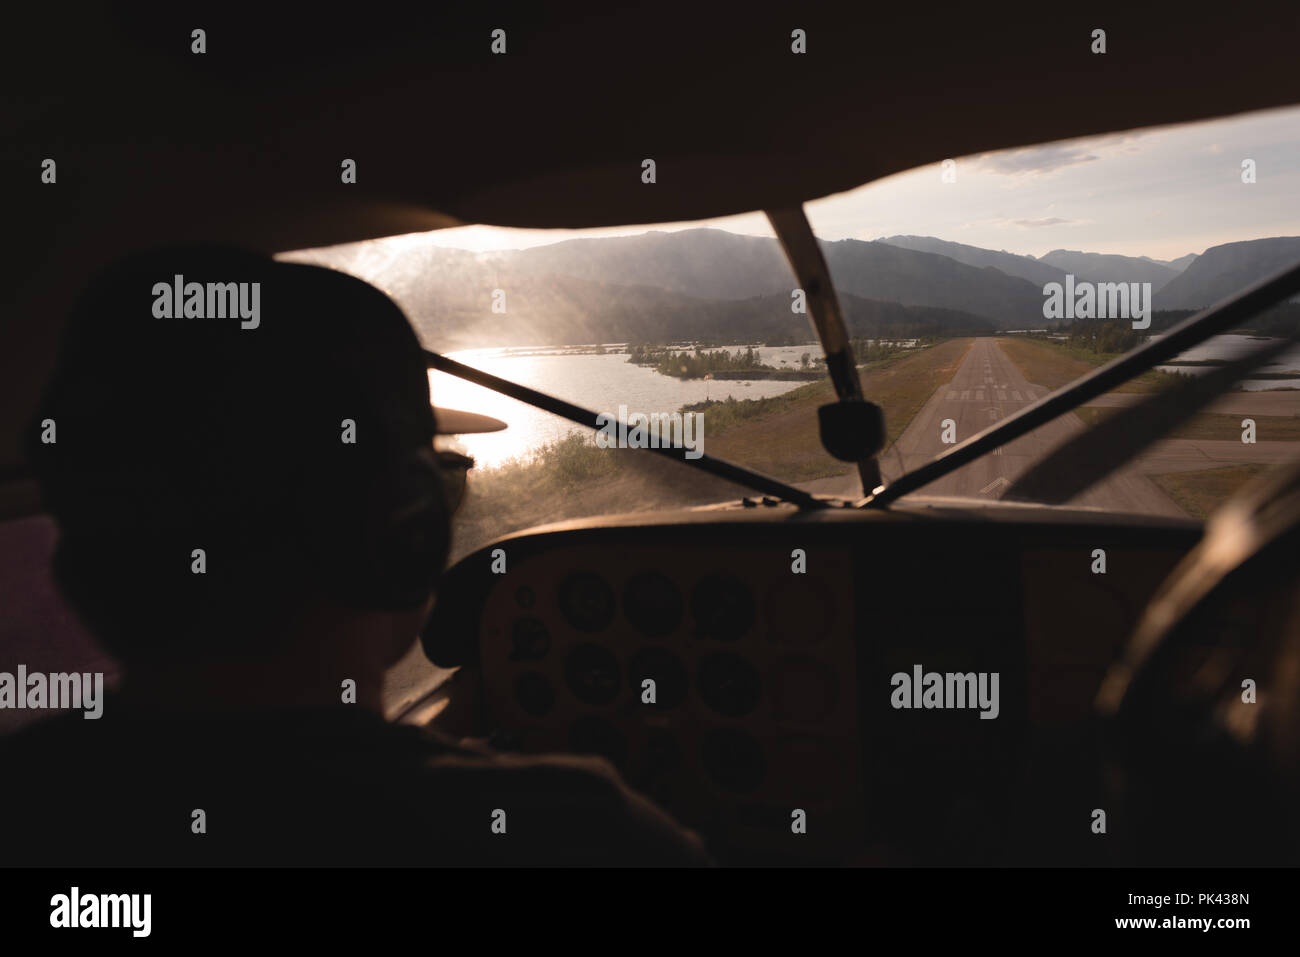 Pilot taking off aircraft on runway - Stock Image